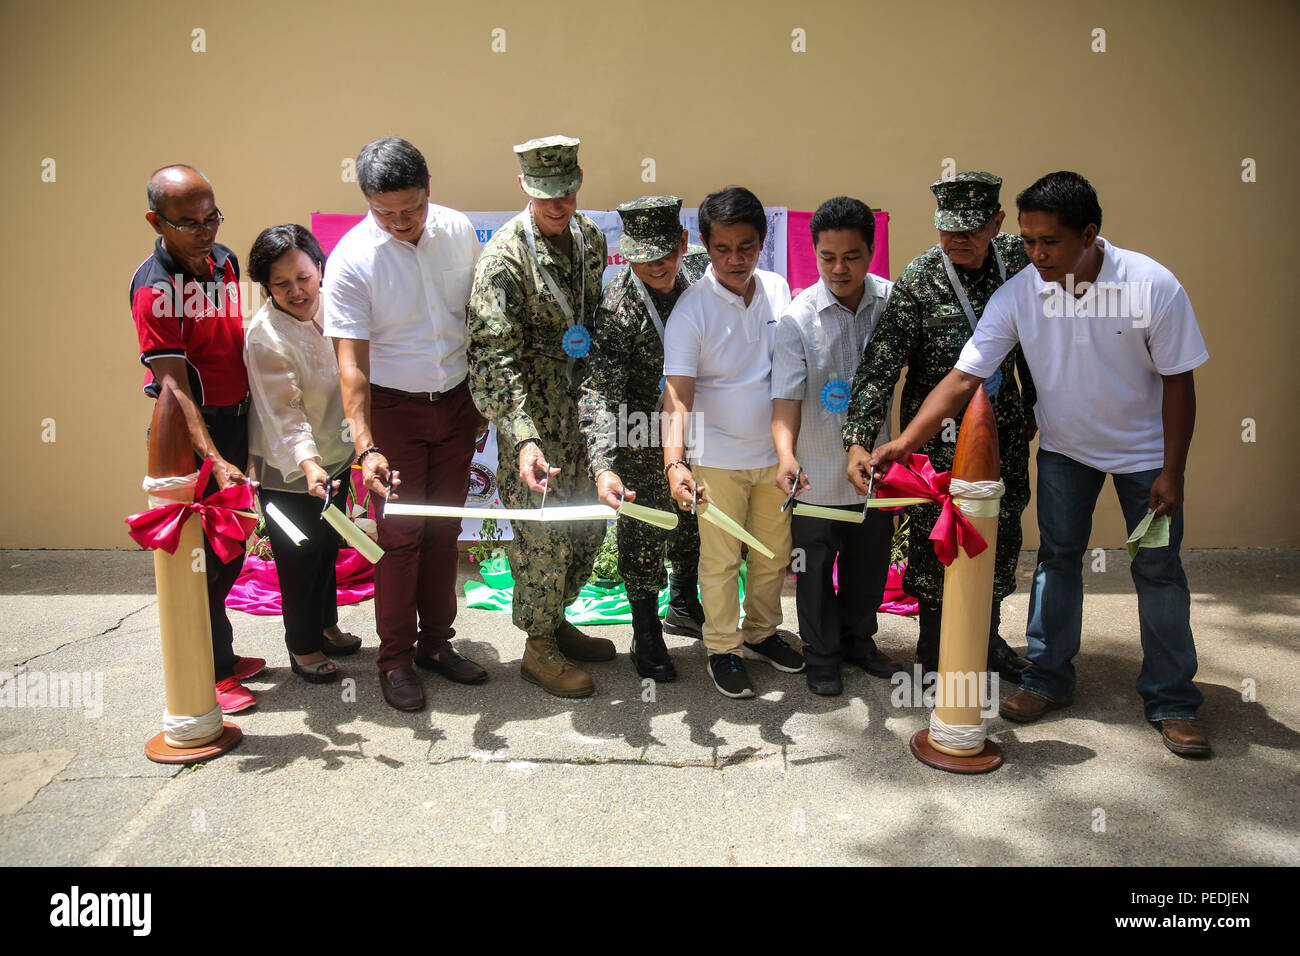 150811-M-GO800-212 FERNANDO CITY, Philippines (Aug. 11, 2015) – Pacific Partnership 2015 leadership and Philippine leadership cut the ribbon at Boy-Utan Elementary School official opening it up for use Aug. 11. Task Force Forager will be in the Philippines until Aug. 15 providing medical and engineering assistance. Task Force Forager, embarked aboard the Military Sealift Command joint high speed vessel USNS Millinocket (JHSV 3) is serving as the secondary platform for Pacific Partnership, led by an expeditionary command element from the Navy's 30th Naval Construction Regiment (30 NCR) from Por - Stock Image